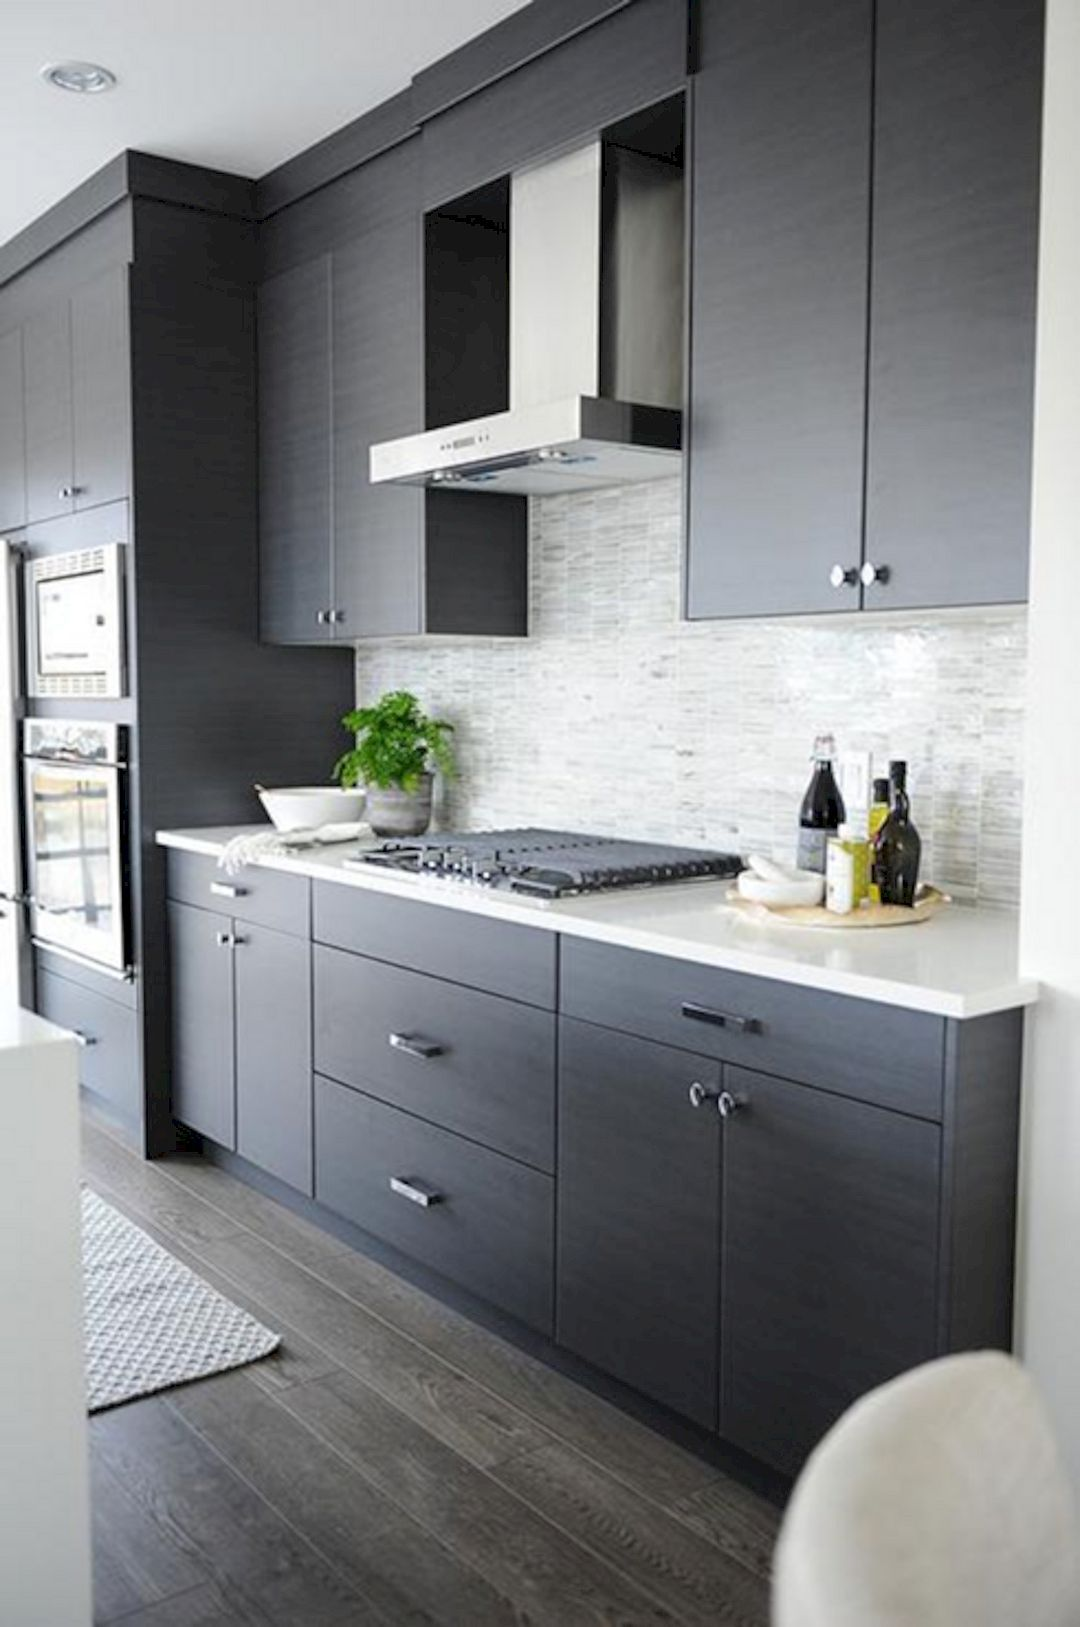 Charmant Stylish Modern Kitchen Cabinet: 127 Design Ideas  Https://www.futuristarchitecture.com/20591 Modern Kitchen Cabinet.html